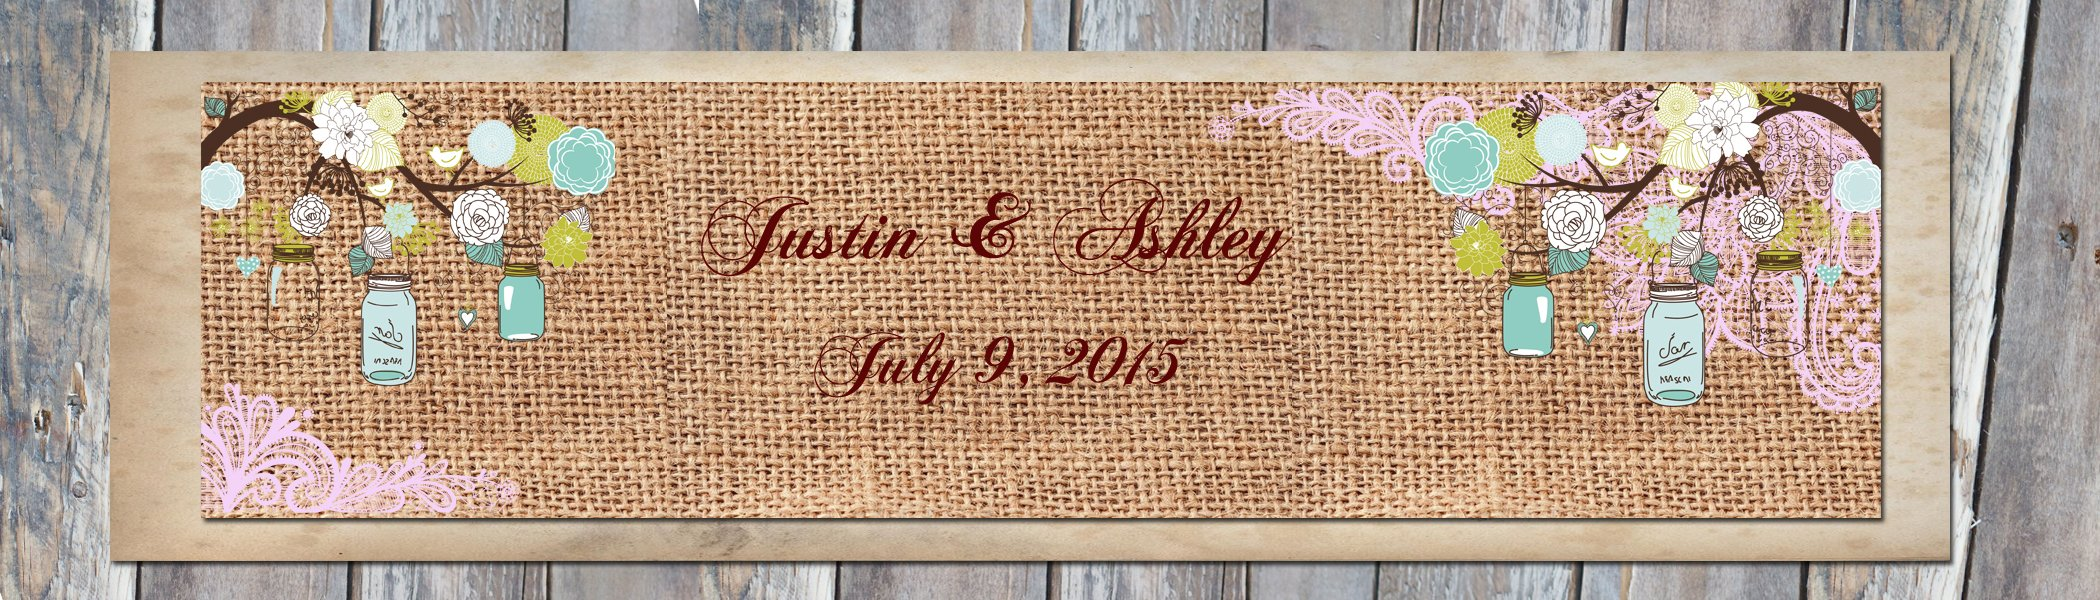 100 Burlap Wood Mason Jars & Lace Country Wedding Anniversary Engagement Party Water Bottle Labels 8''x2'' by DesignThatSign (Image #2)